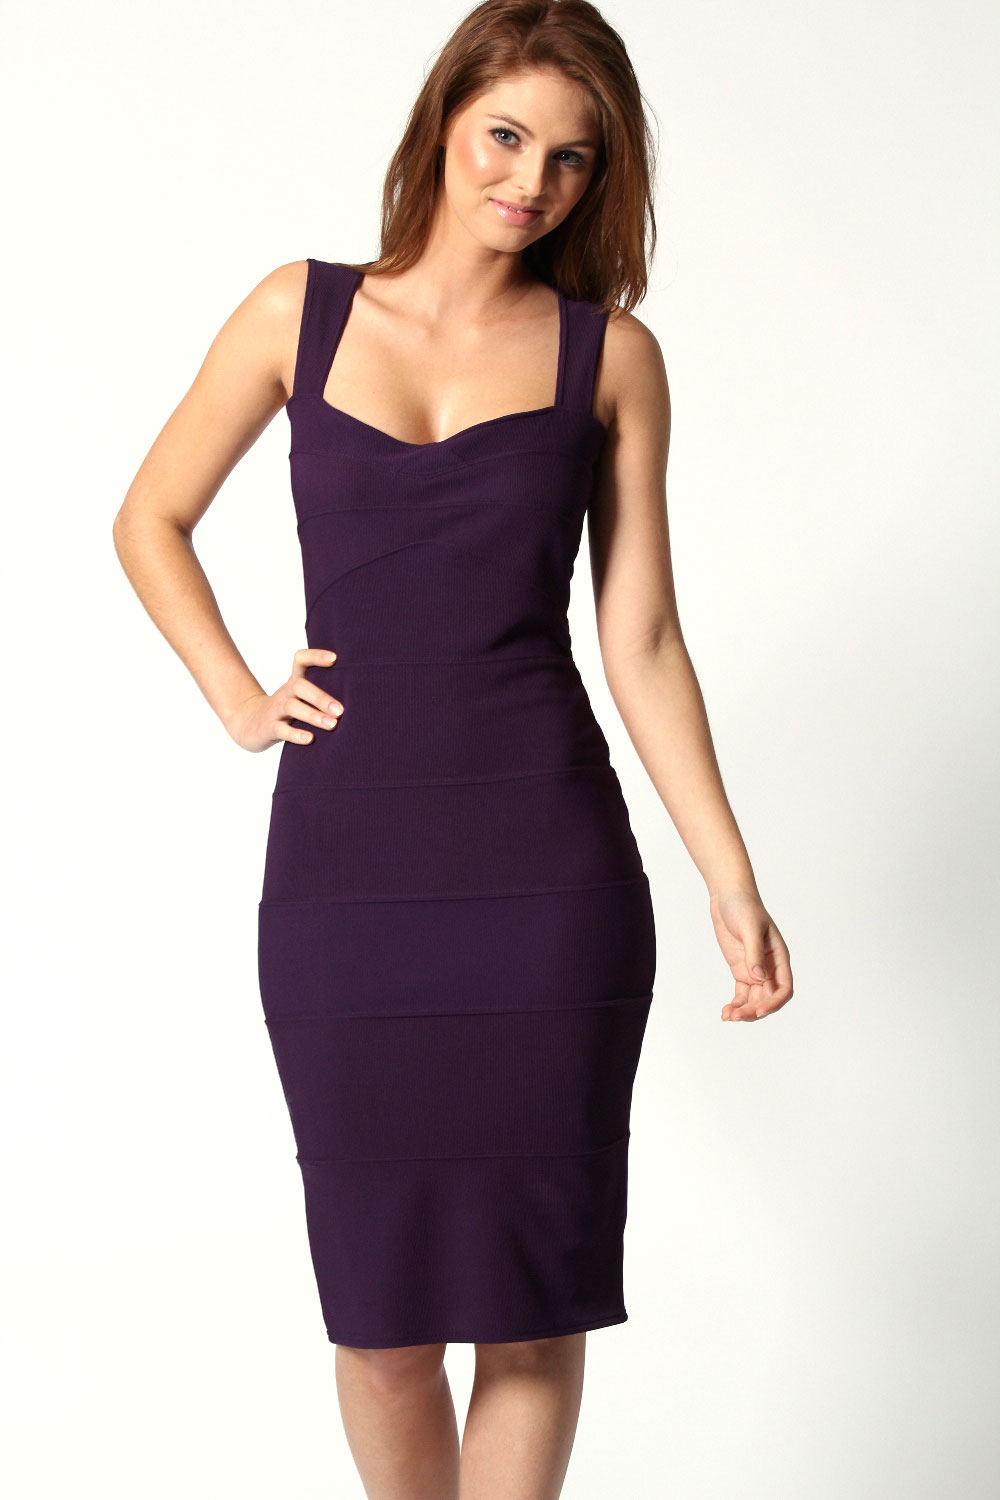 Bodycon Midi Dress Picture Collection